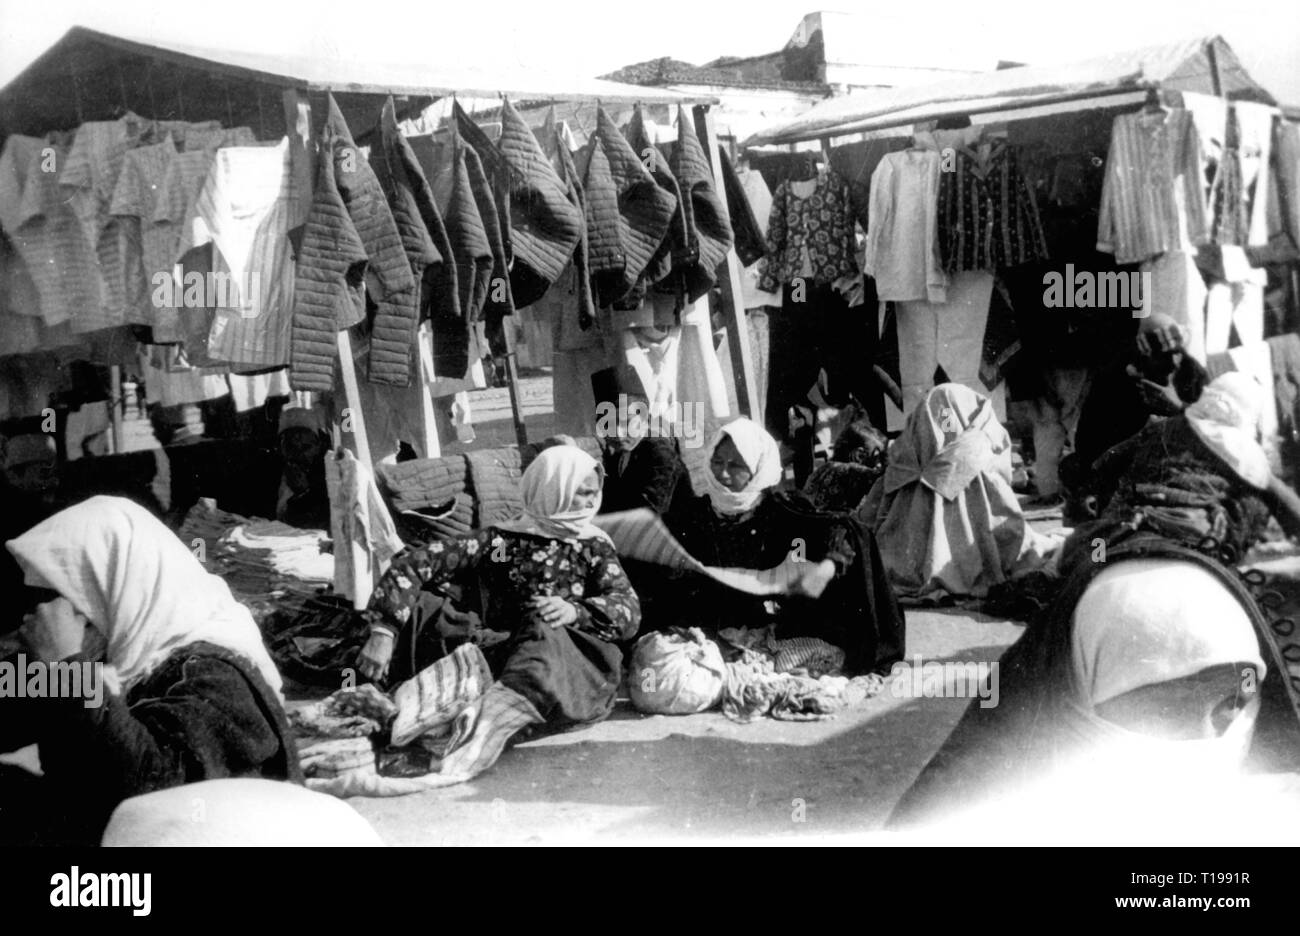 geography / travel historic, Albania, cities and communities, Tirana, markets, clothing retailer on the marketplace, 1930s, Additional-Rights-Clearance-Info-Not-Available - Stock Image